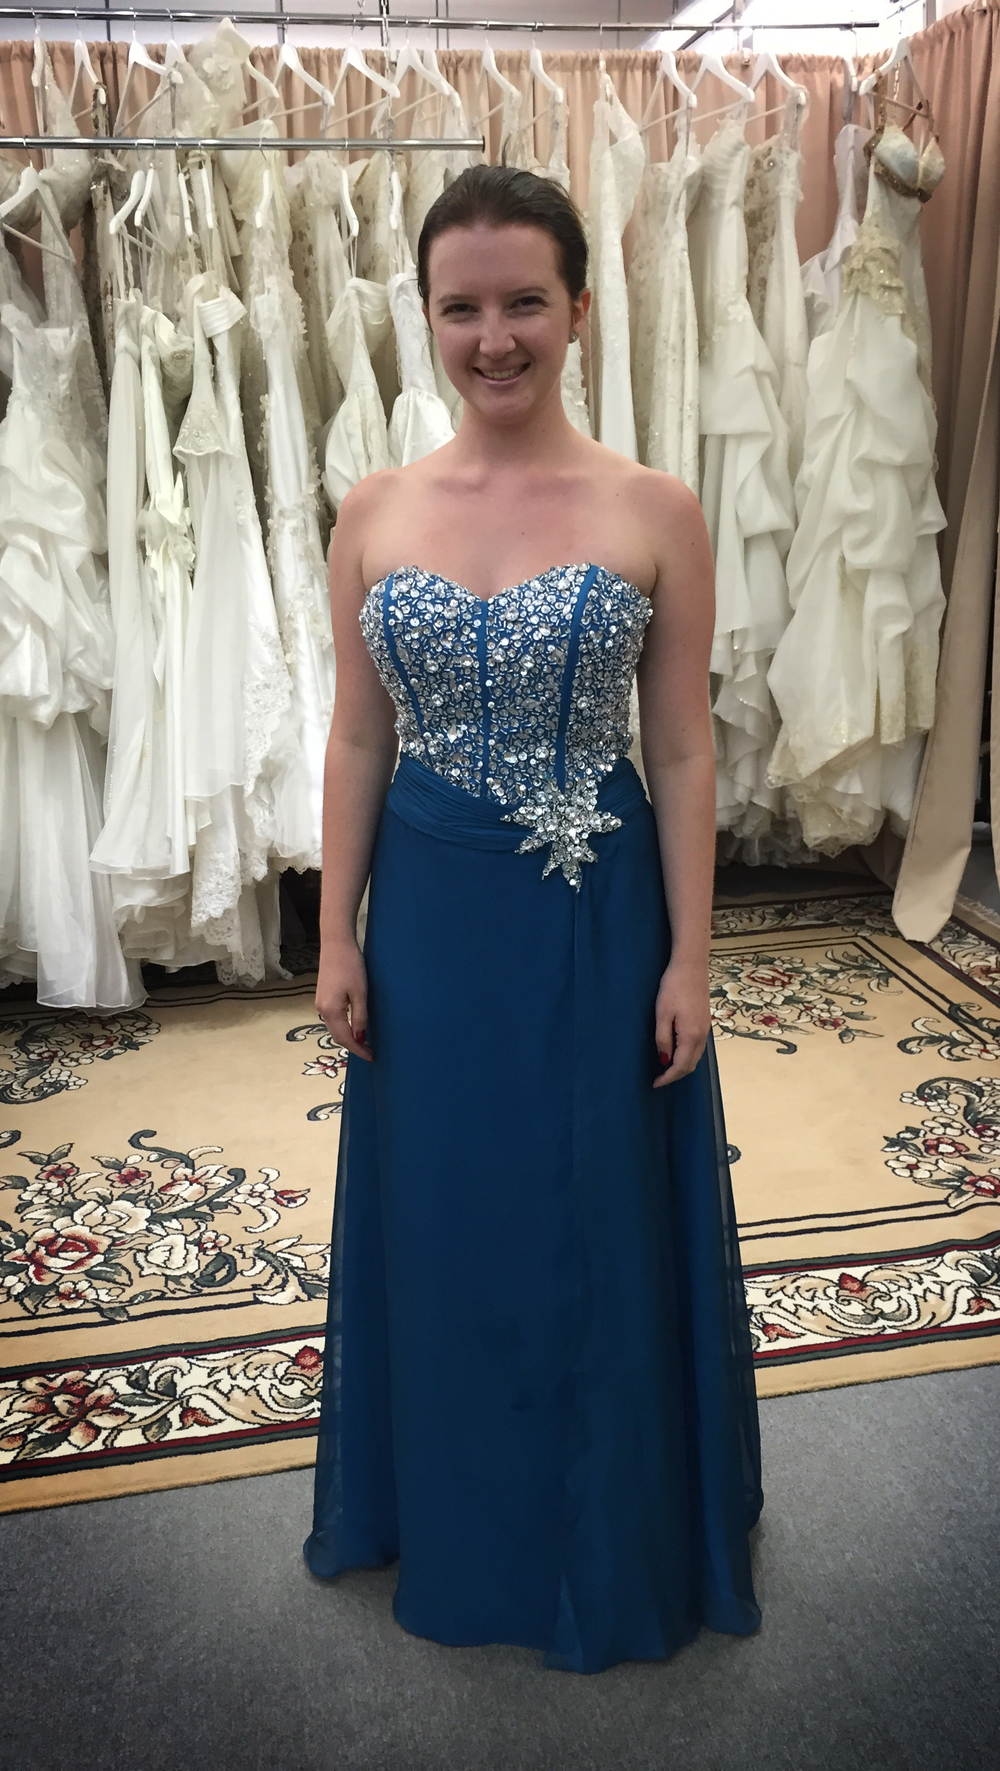 Emily had her dress taken in with beading, and we had it turn around in a day, she is impressed with the finish and the time frame.